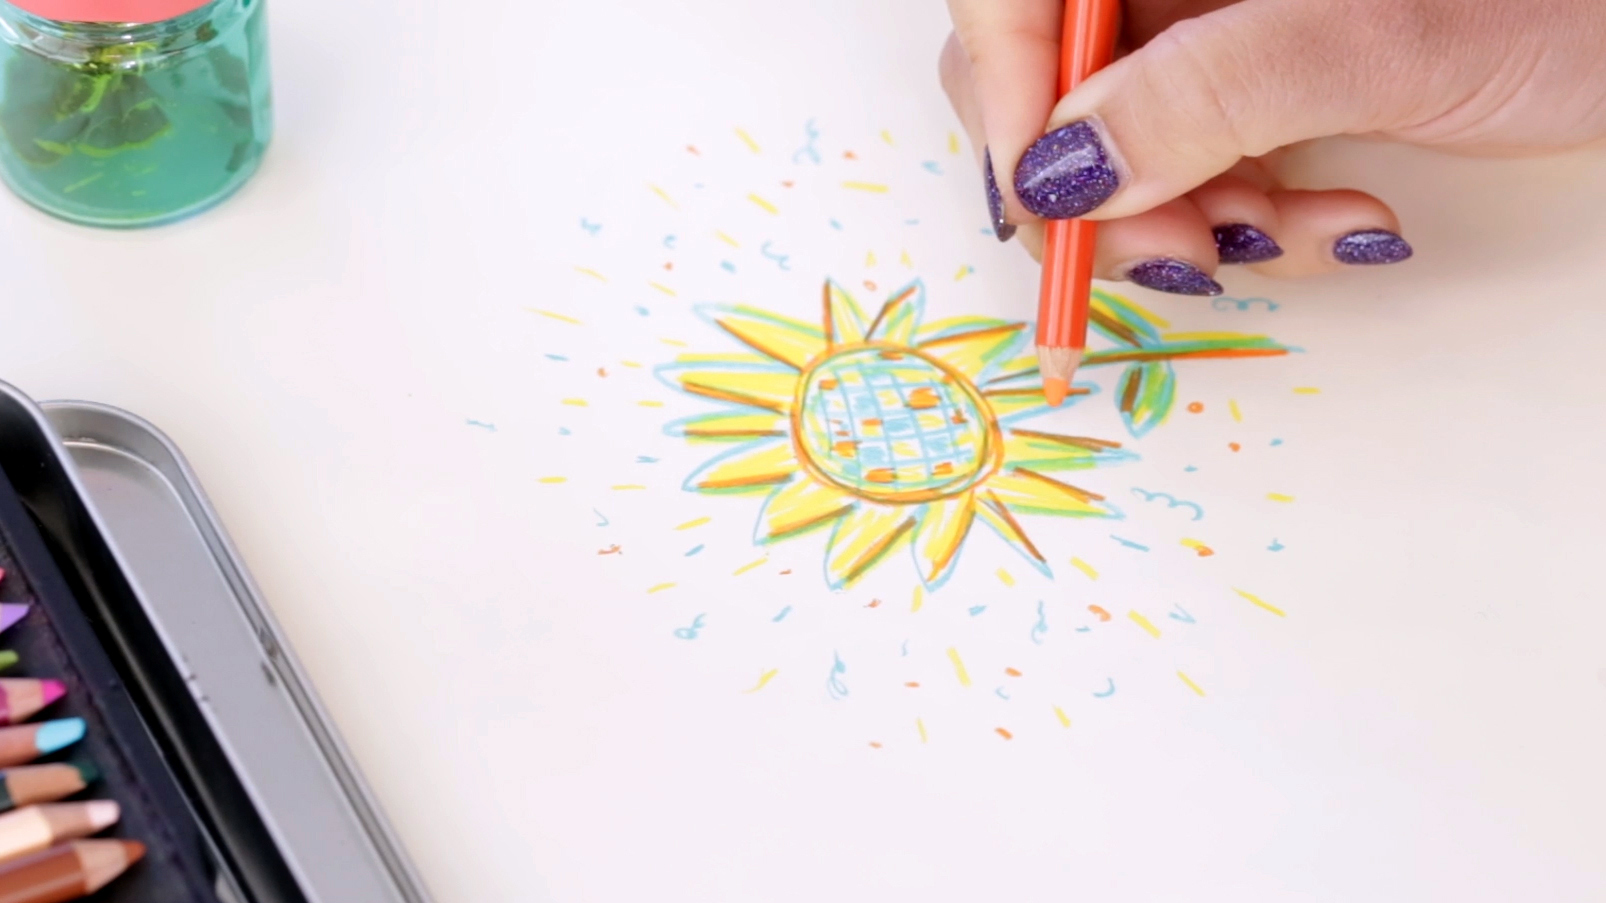 What Happens in Your Brain When You Make Art | MindShift